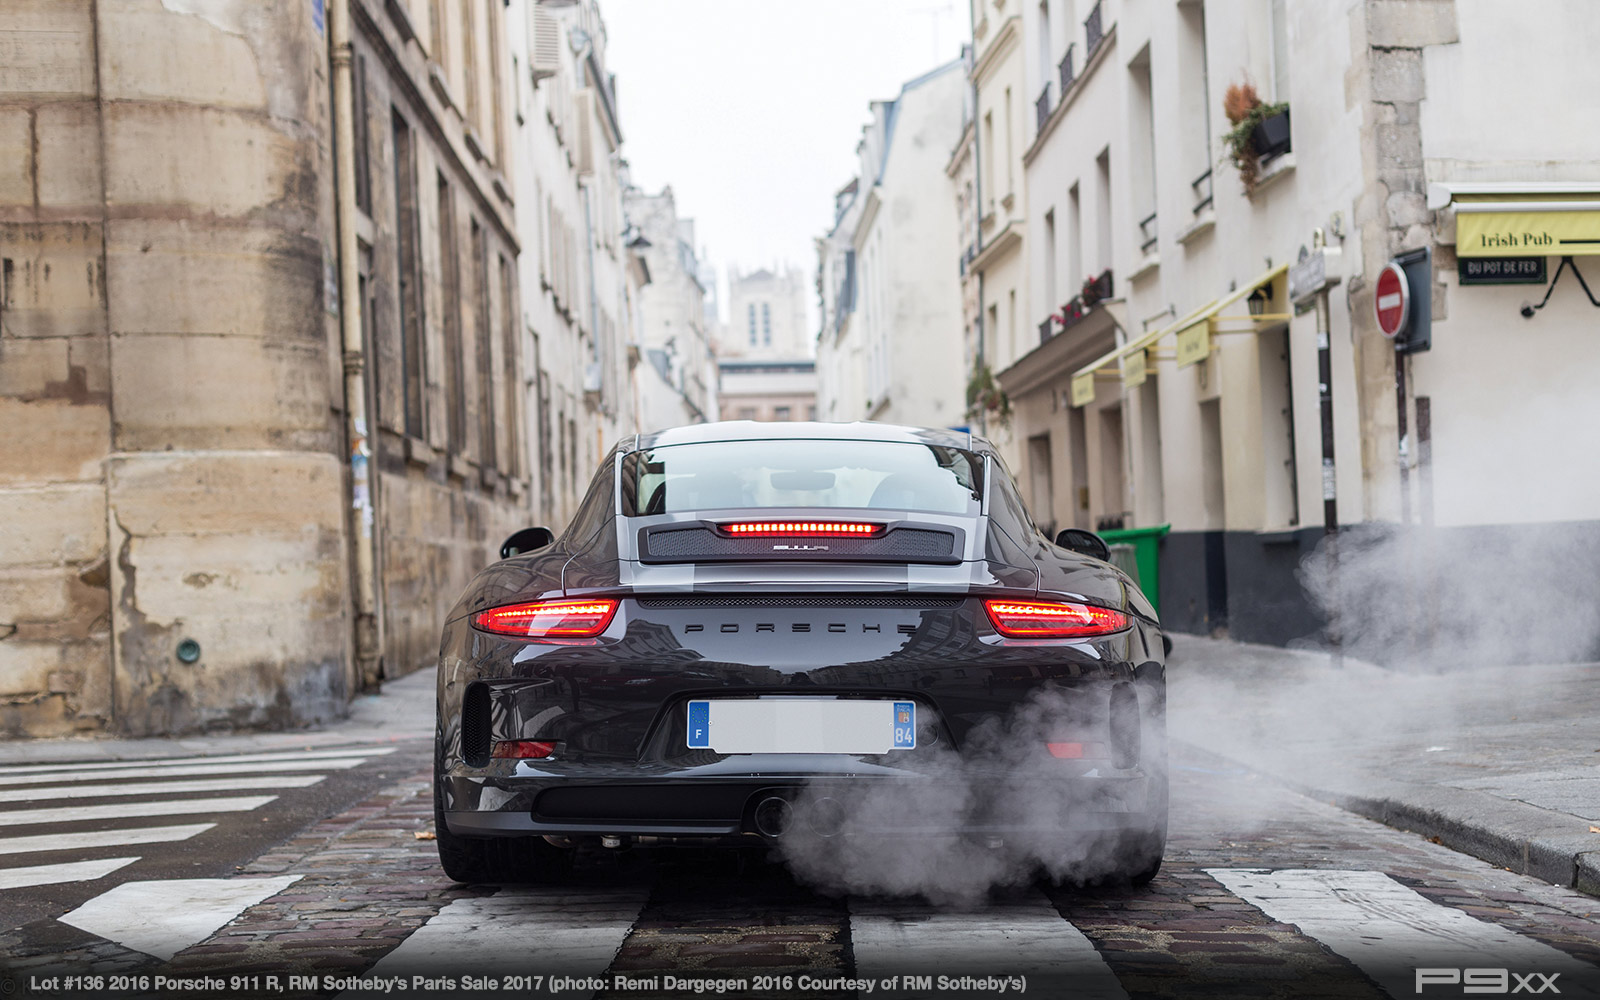 Steve mcqueen inspired porsche 911r slated for rm sothebys paris rm sothebys estimates that this 911 r will sell between 450000 650000 itll go up on the block february 8 alas unlike most of the vintage cars up sciox Images